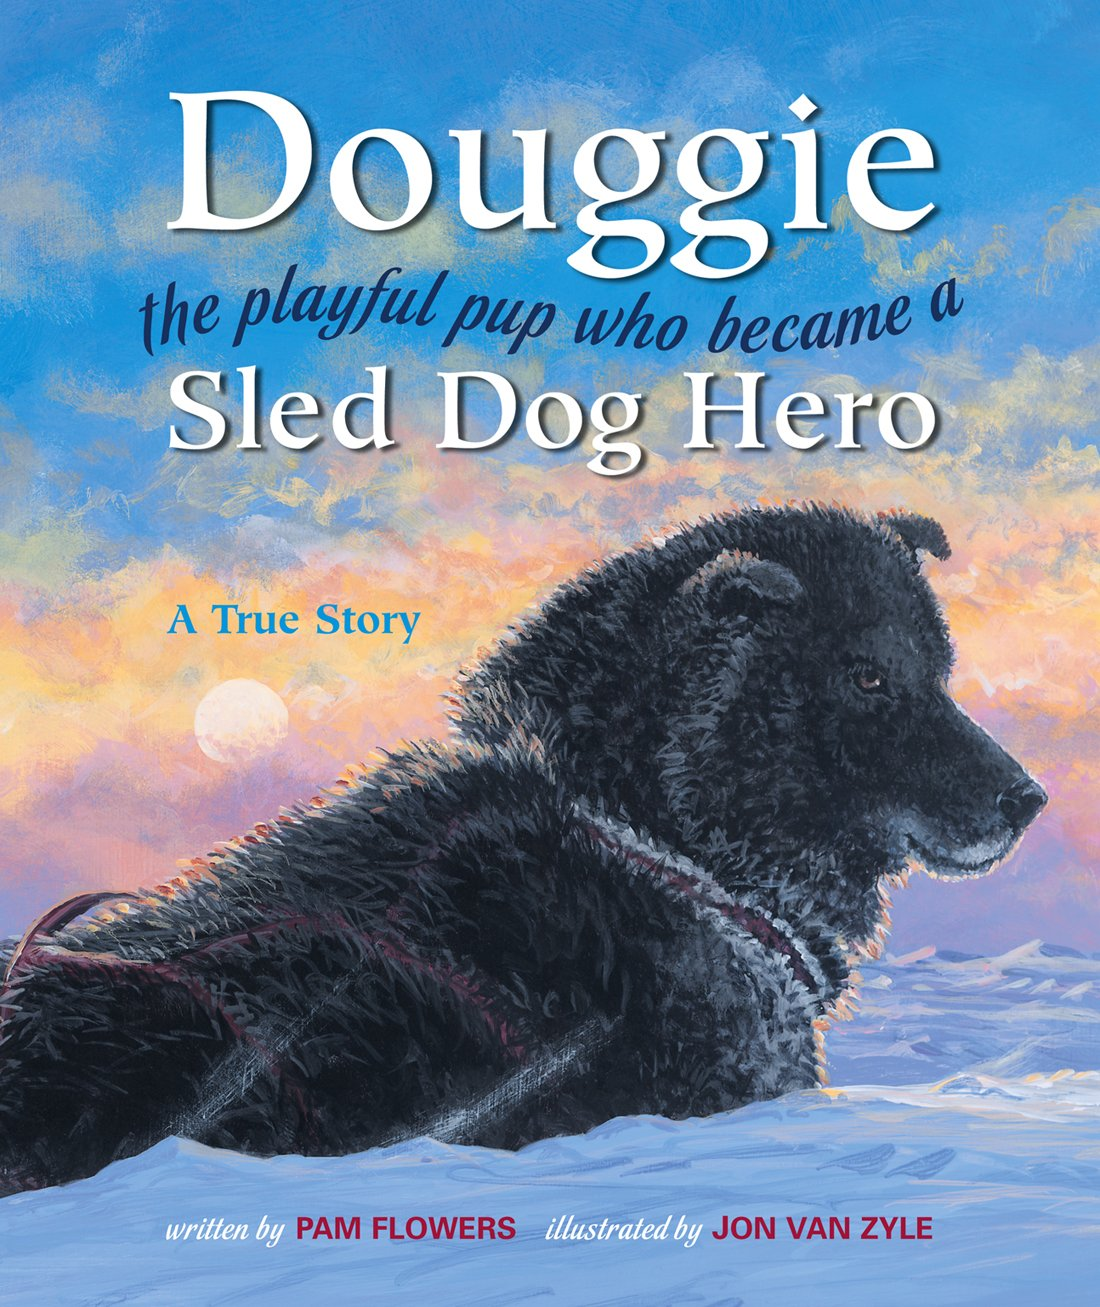 Douggie: the playful pup who became a sled dog hero by Graphic Arts Center Publishing Co. (Image #1)